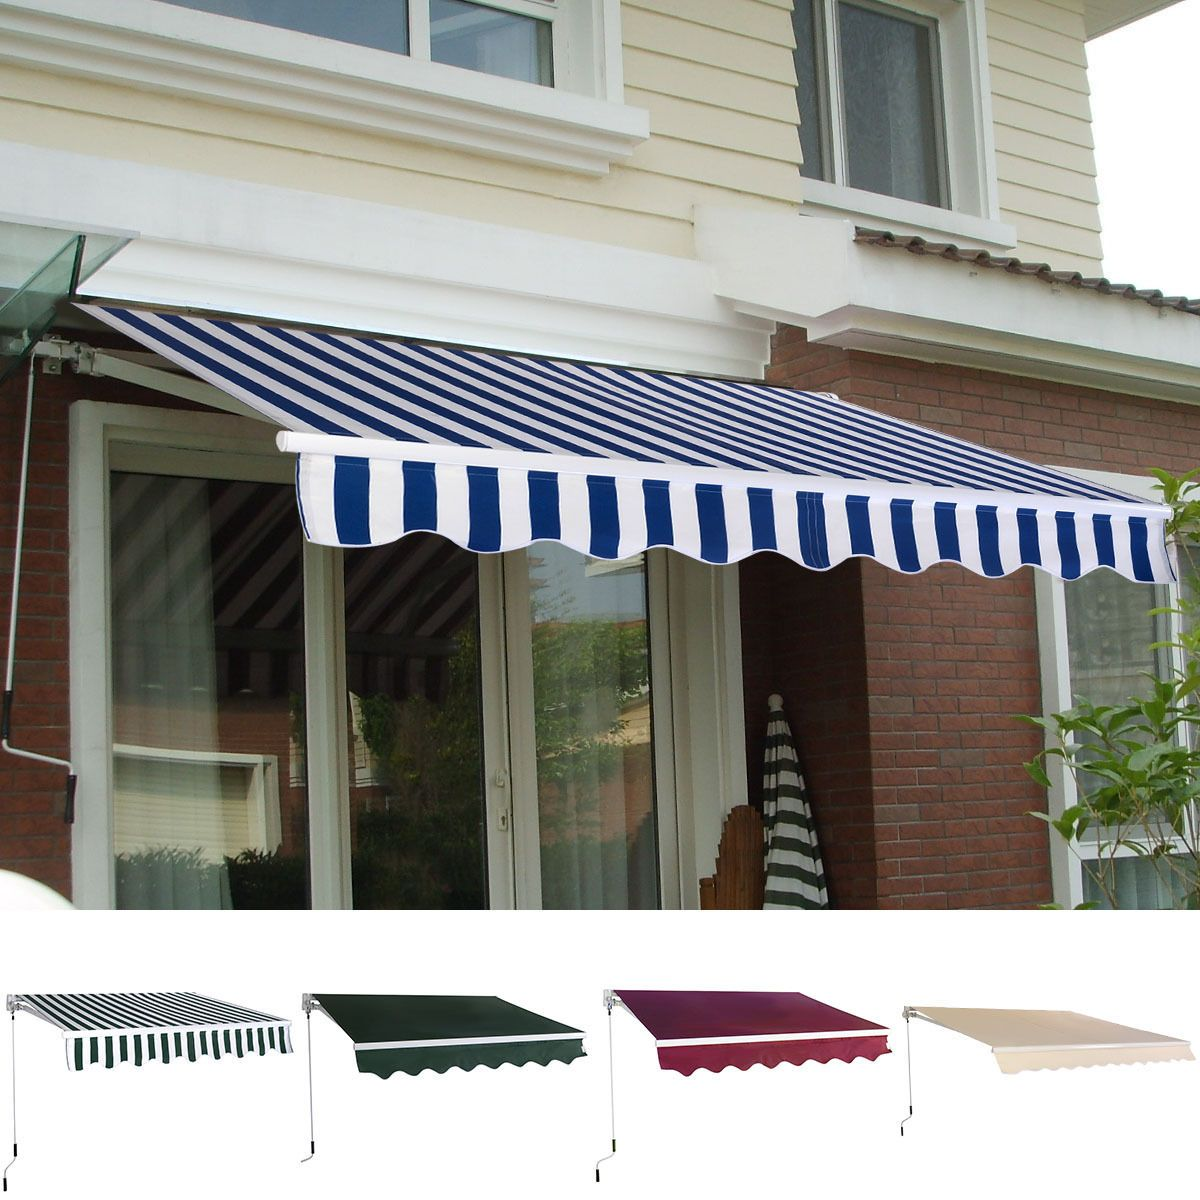 Manual Patio 8 2 6 5 Retractable Deck Awning Sunshade Shelter Canopy Outdoor Canopy Outdoor Deck Awnings Patio Awning